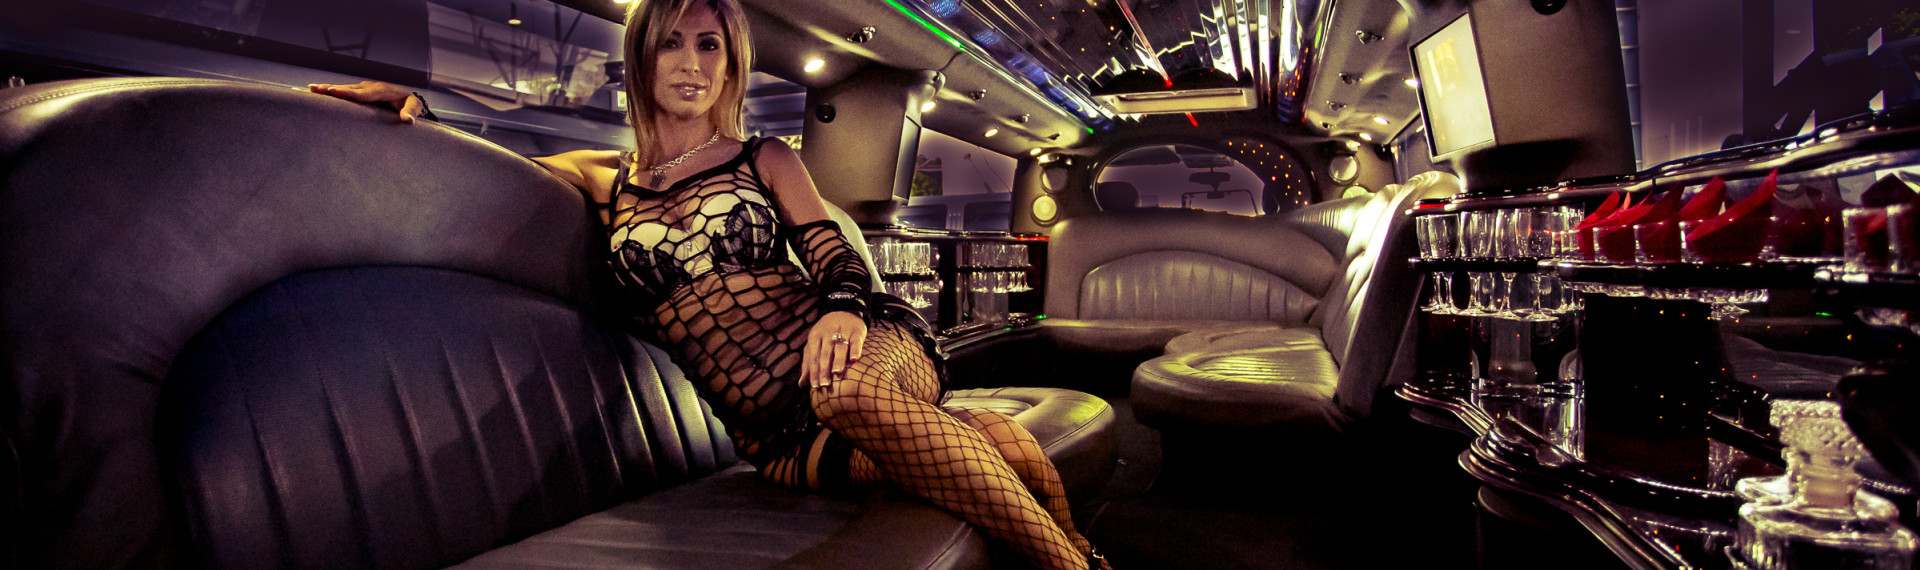 Strip Limo Prague